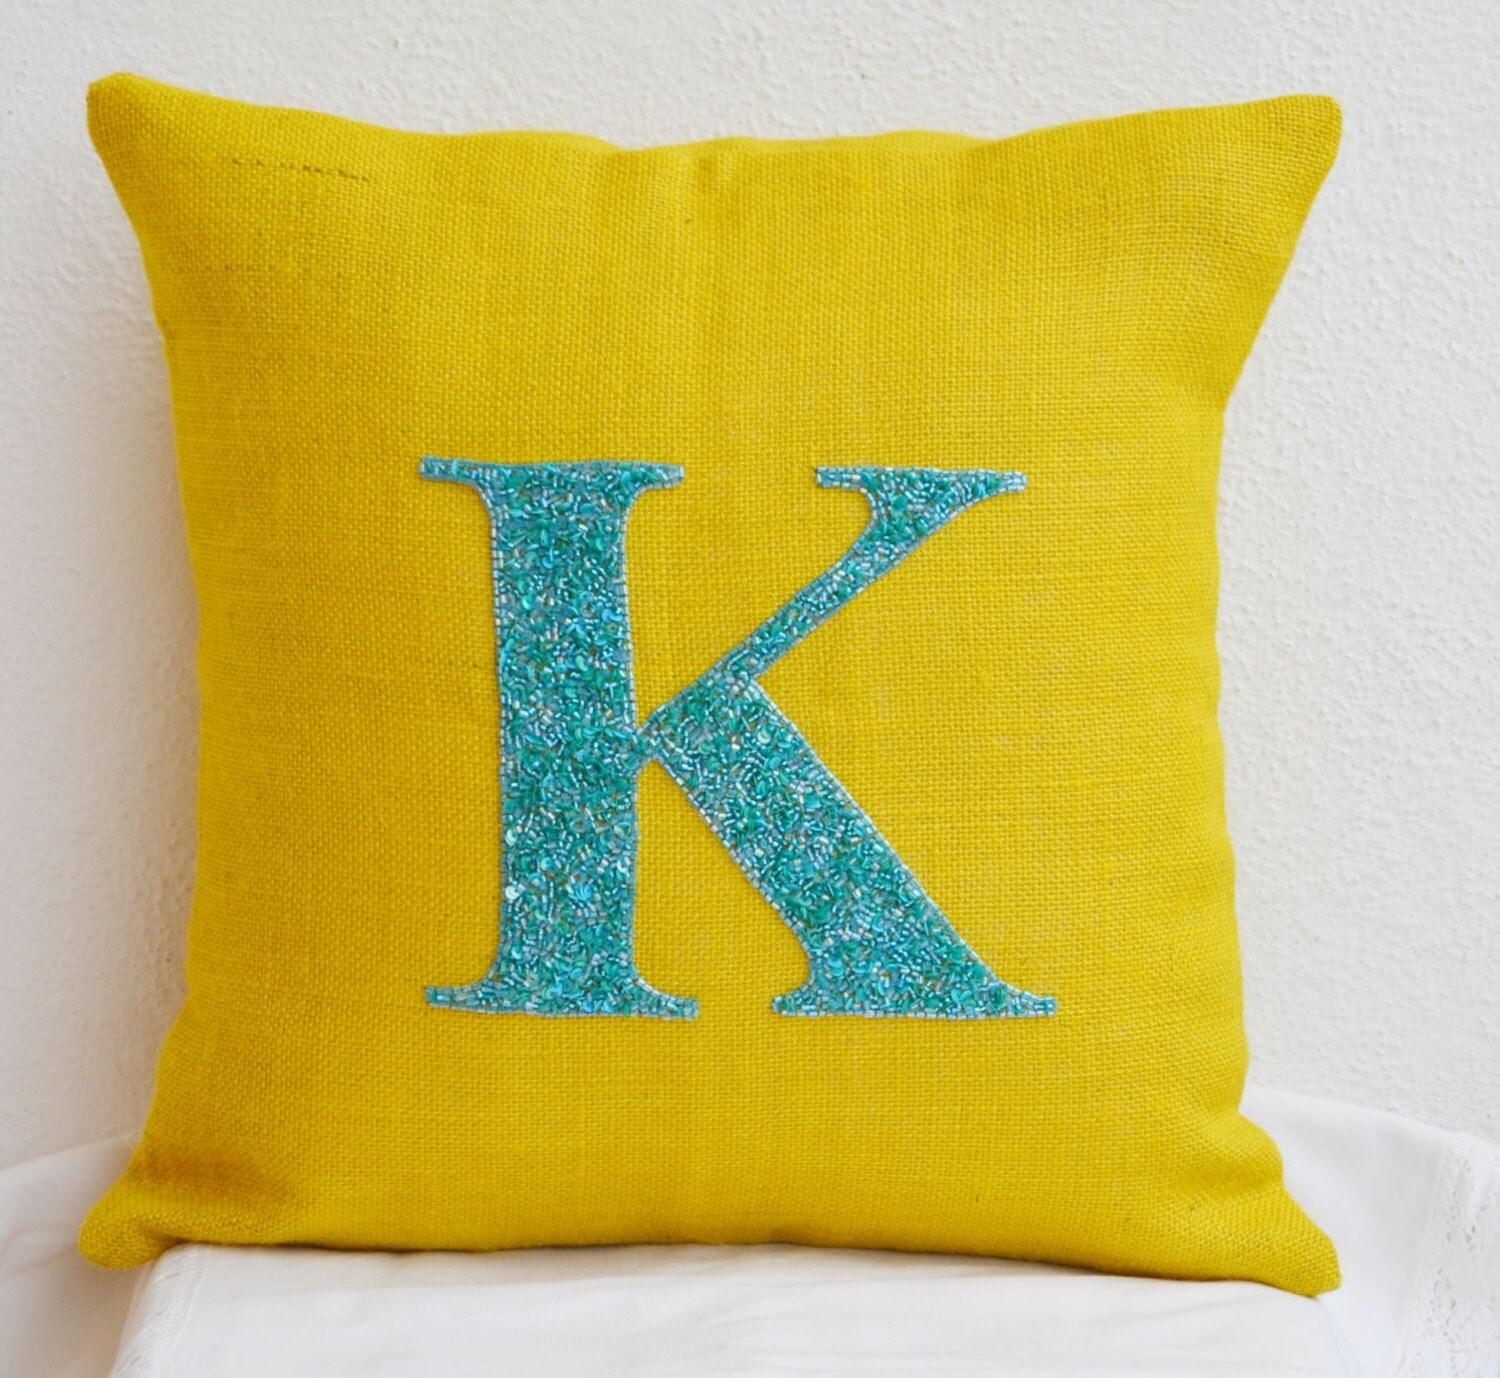 Personalized pillows Teal Aqua Monogrammed pillows Outdoor